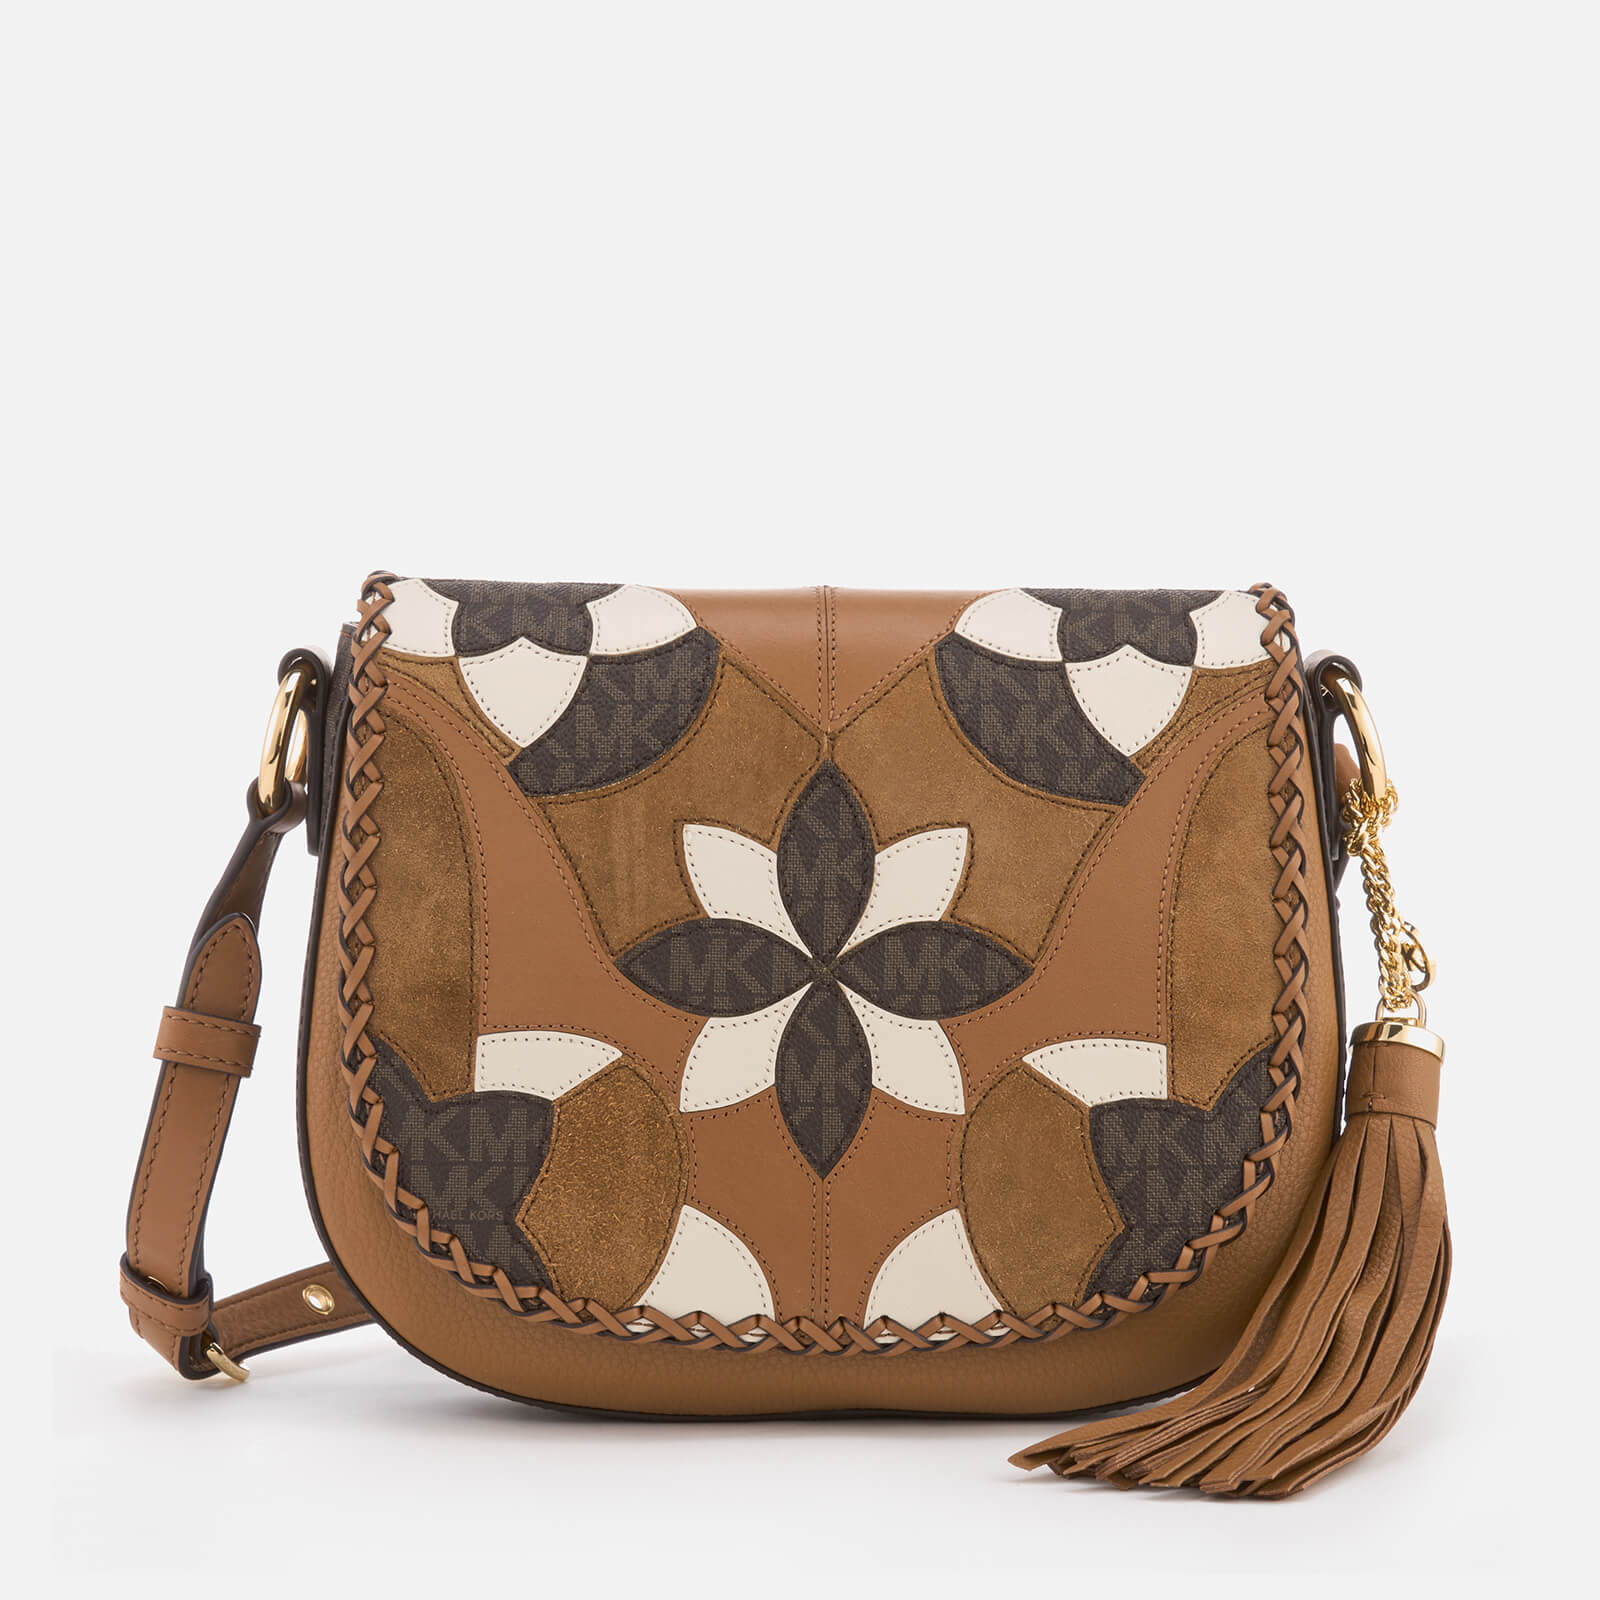 d2b6aaef0aa5 MICHAEL MICHAEL KORS Women s Brooklyn Patchwork Medium Saddle Bag - Acorn -  Free UK Delivery over £50